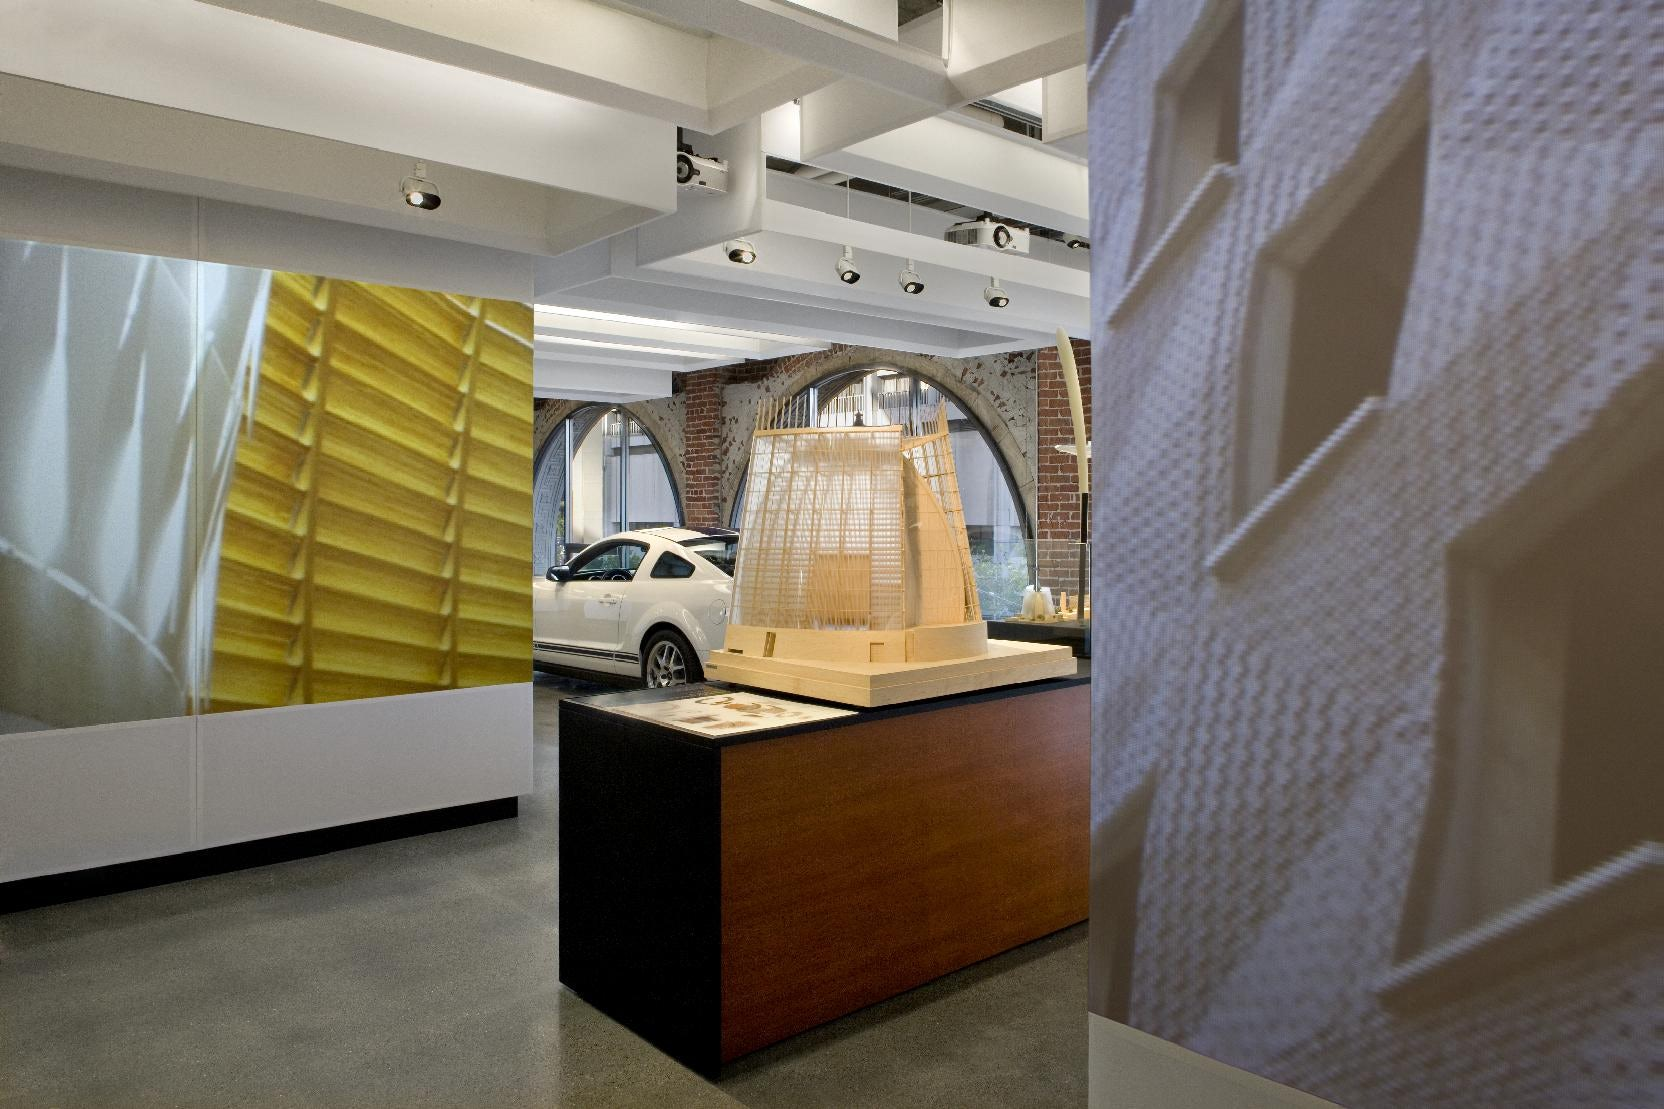 Autodesk's head office features various exhibits of 3D design in action